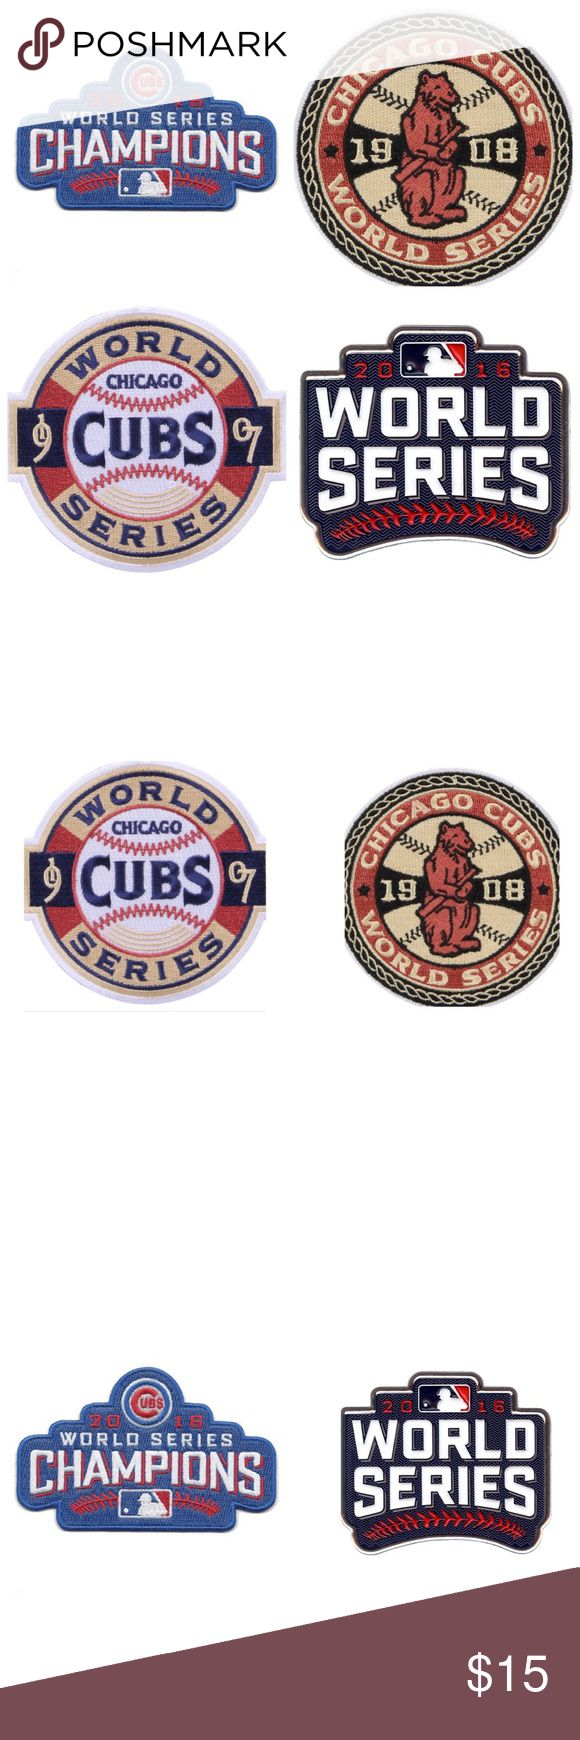 Chicago Cubs World Series Patch Collection (4) Chicago Cubs World Series Patch Collection. This set includes the 2016 World Series patch, the 2016 World Series Champions patch,the 1907 World Series and the 1908 World Series patches. A unique set to add to your collection at a great price. These retail from $10-$20 EACH. Grab them all for $15 shipped. Please check my listings for more Cubs merchandise! Need a Cubs W flag? Get those here too! Accessories